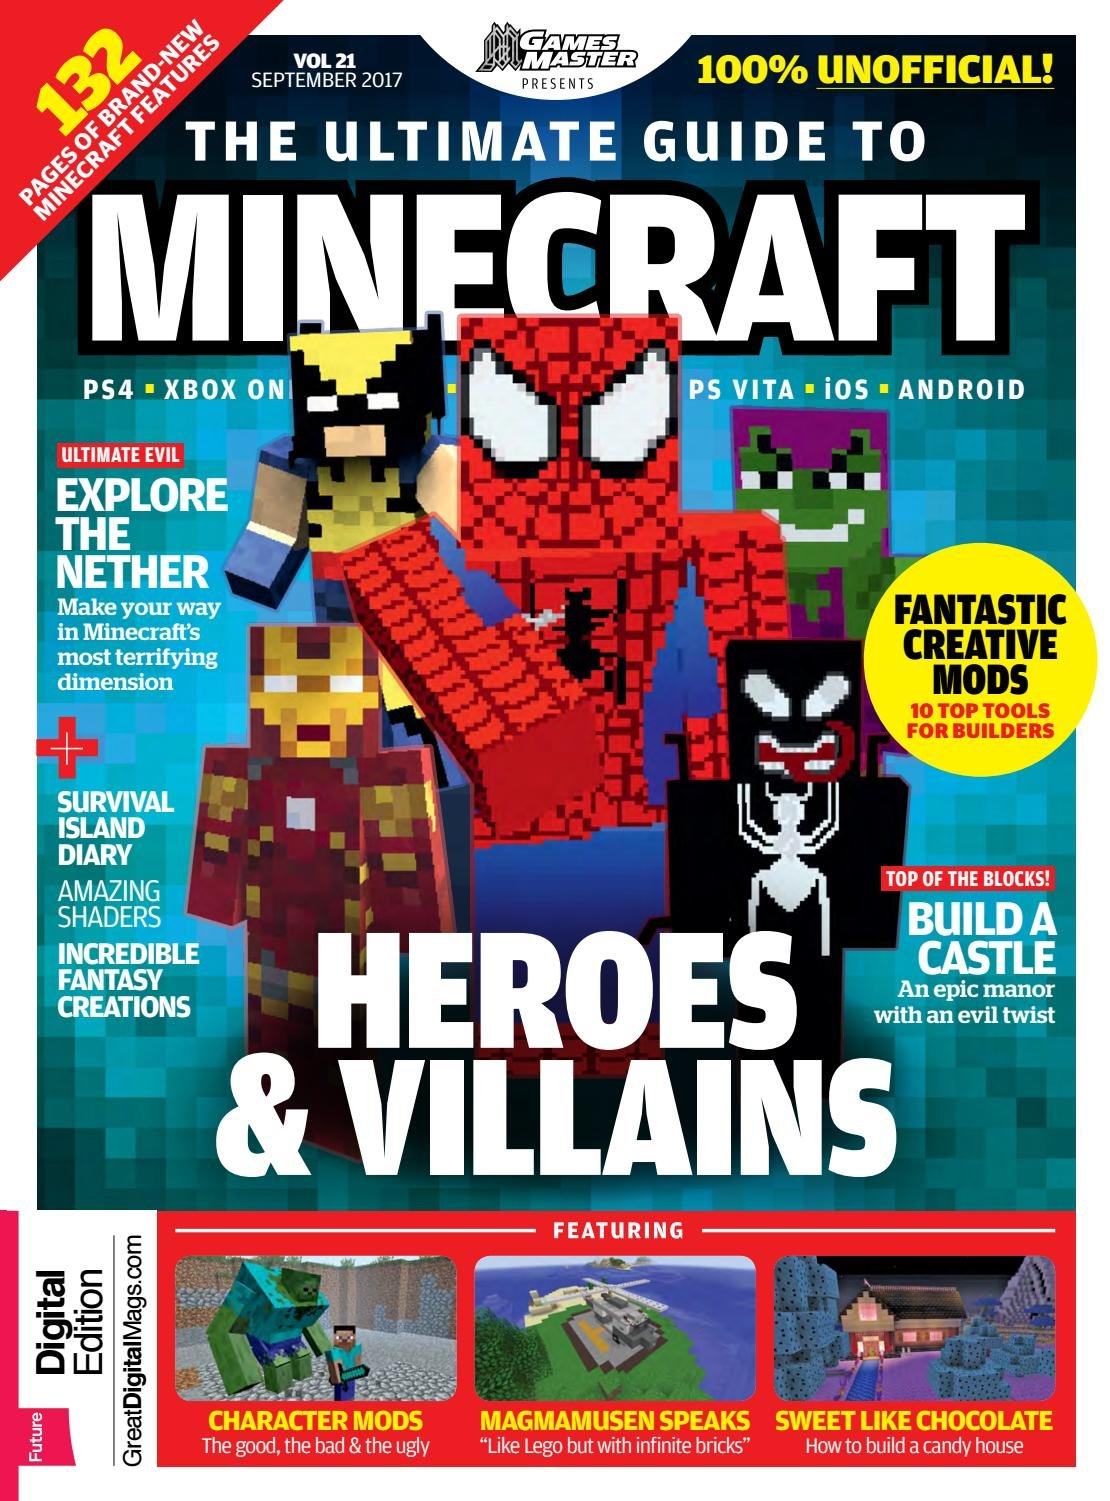 GamesMaster Presents: The Ultimate Guide to Minecraft Vol.21 (September 2017)